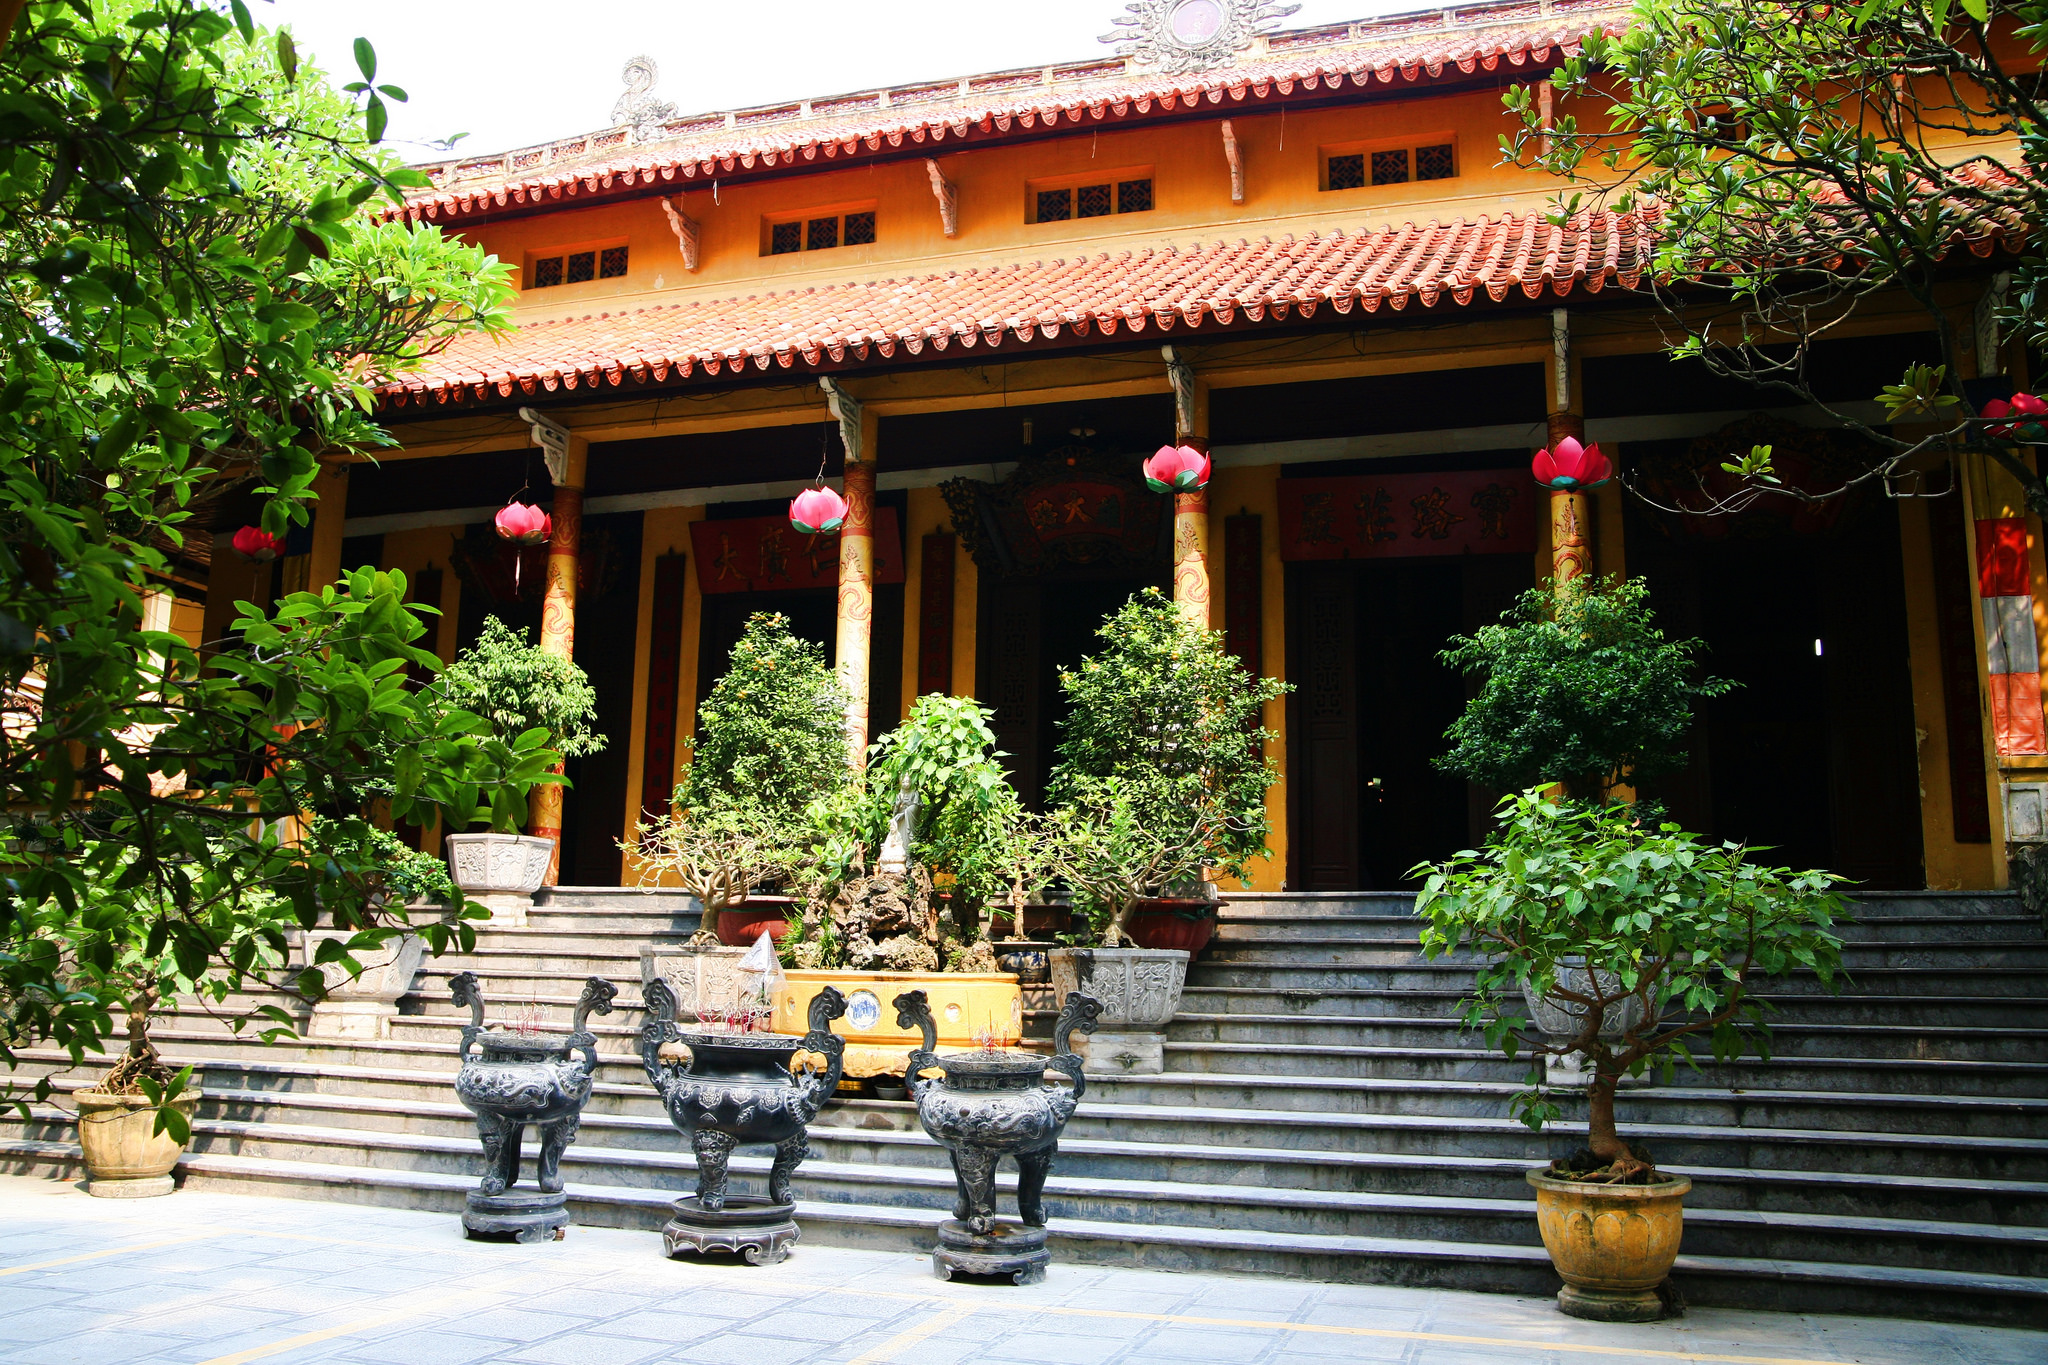 Courtyard at Quan Su Pagoda, Hanoi